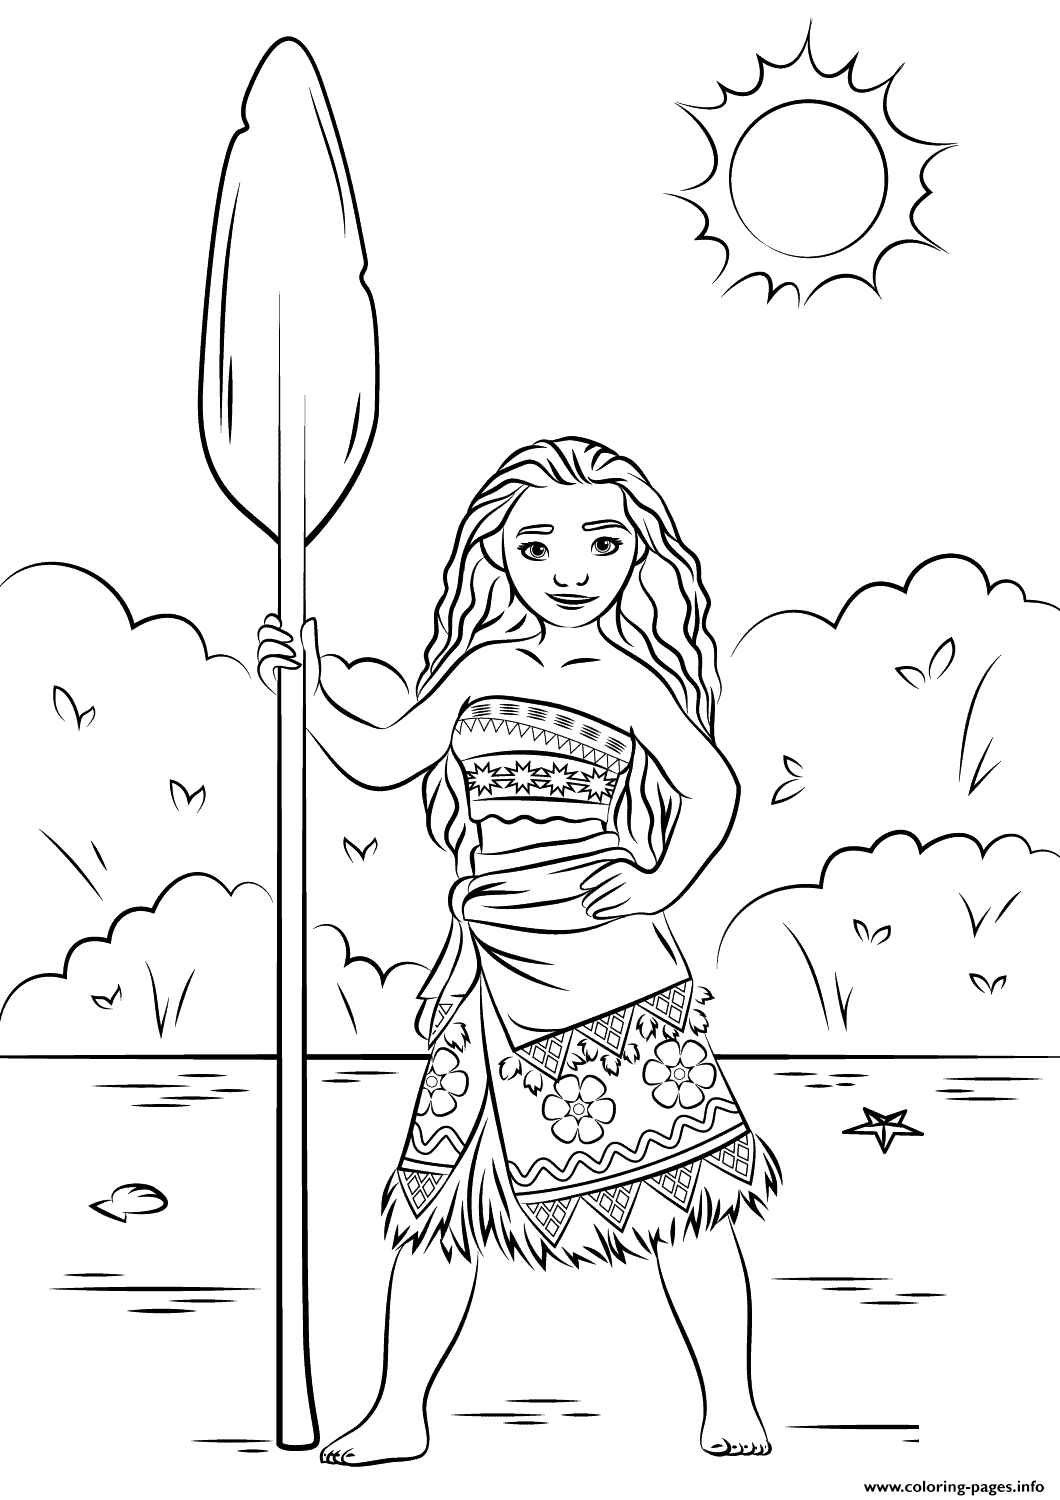 Coloring Pages Princess Pdf : Princess moana disney coloring pages printable